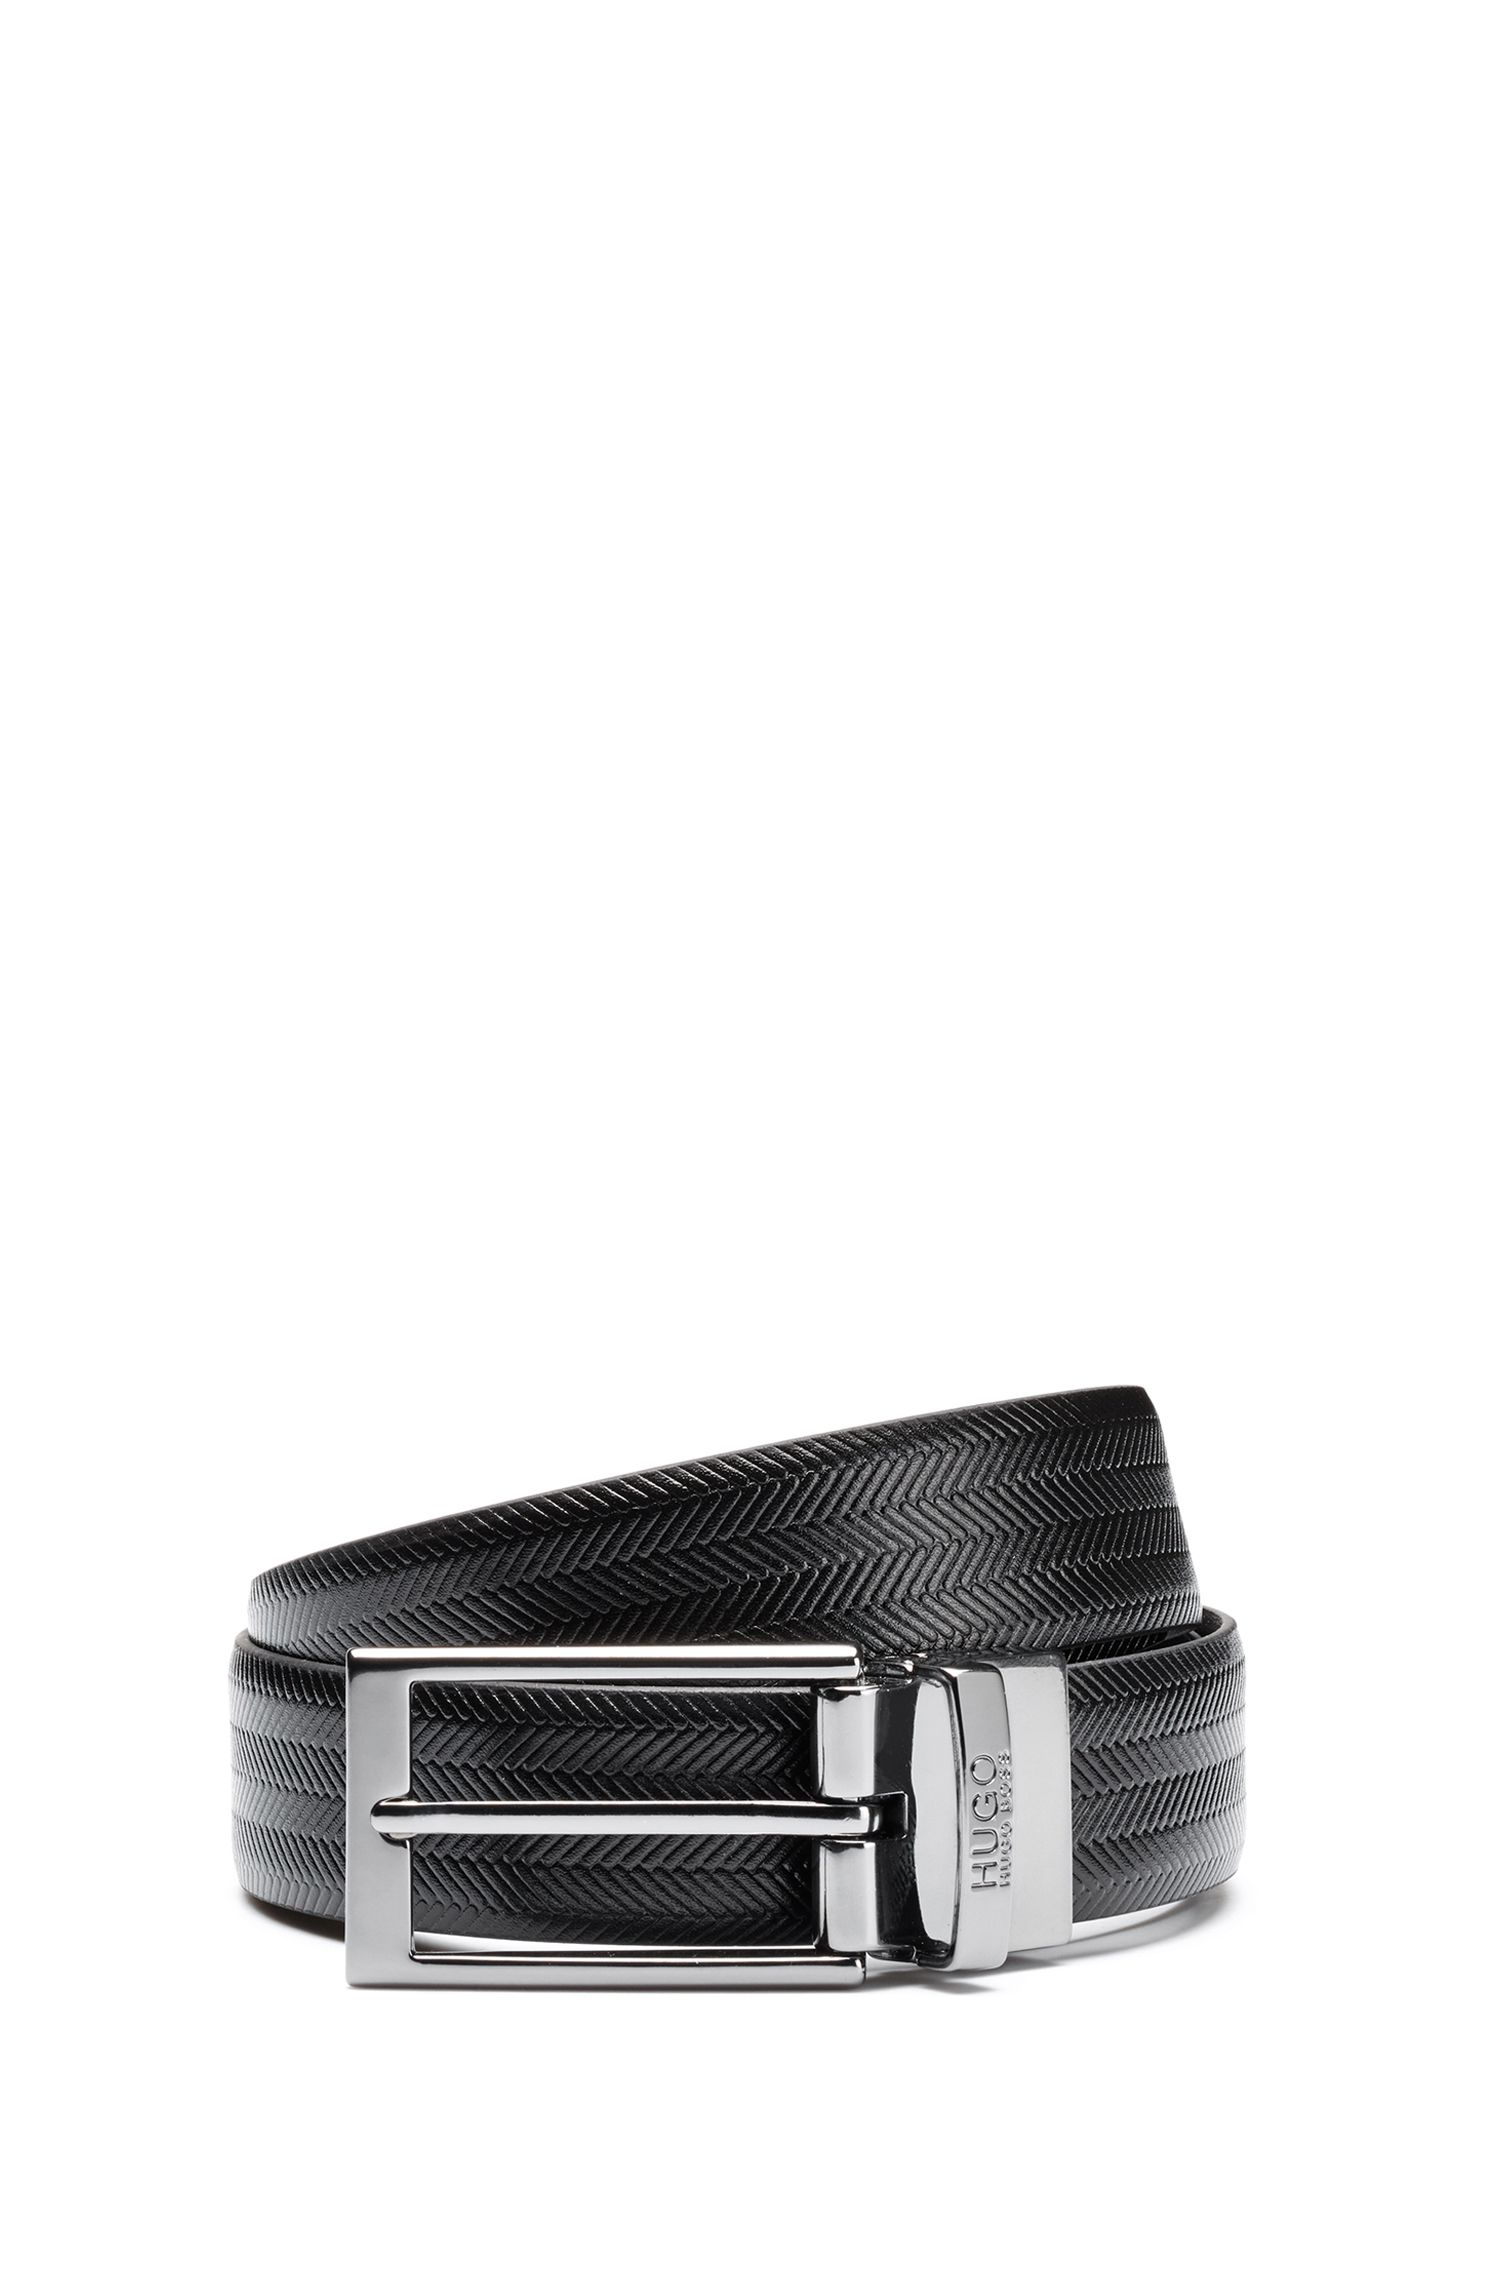 Leather belt with embossed chevron pattern and polished hardware, Black